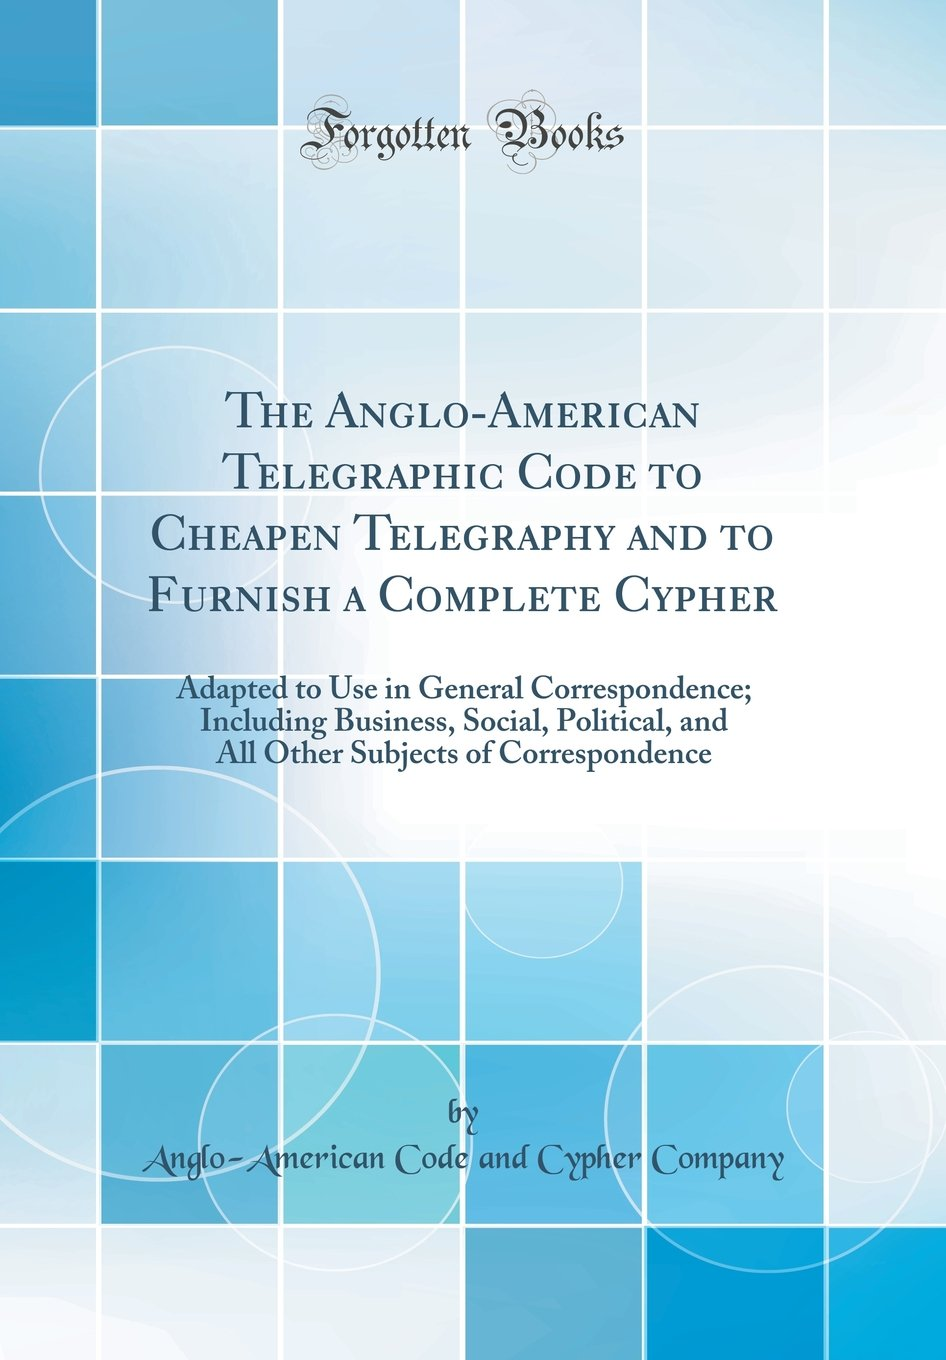 The Anglo-American Telegraphic Code to Cheapen Telegraphy and to Furnish a Complete Cypher: Adapted to Use in General Correspondence; Including ... Subjects of Correspondence (Classic Reprint) PDF